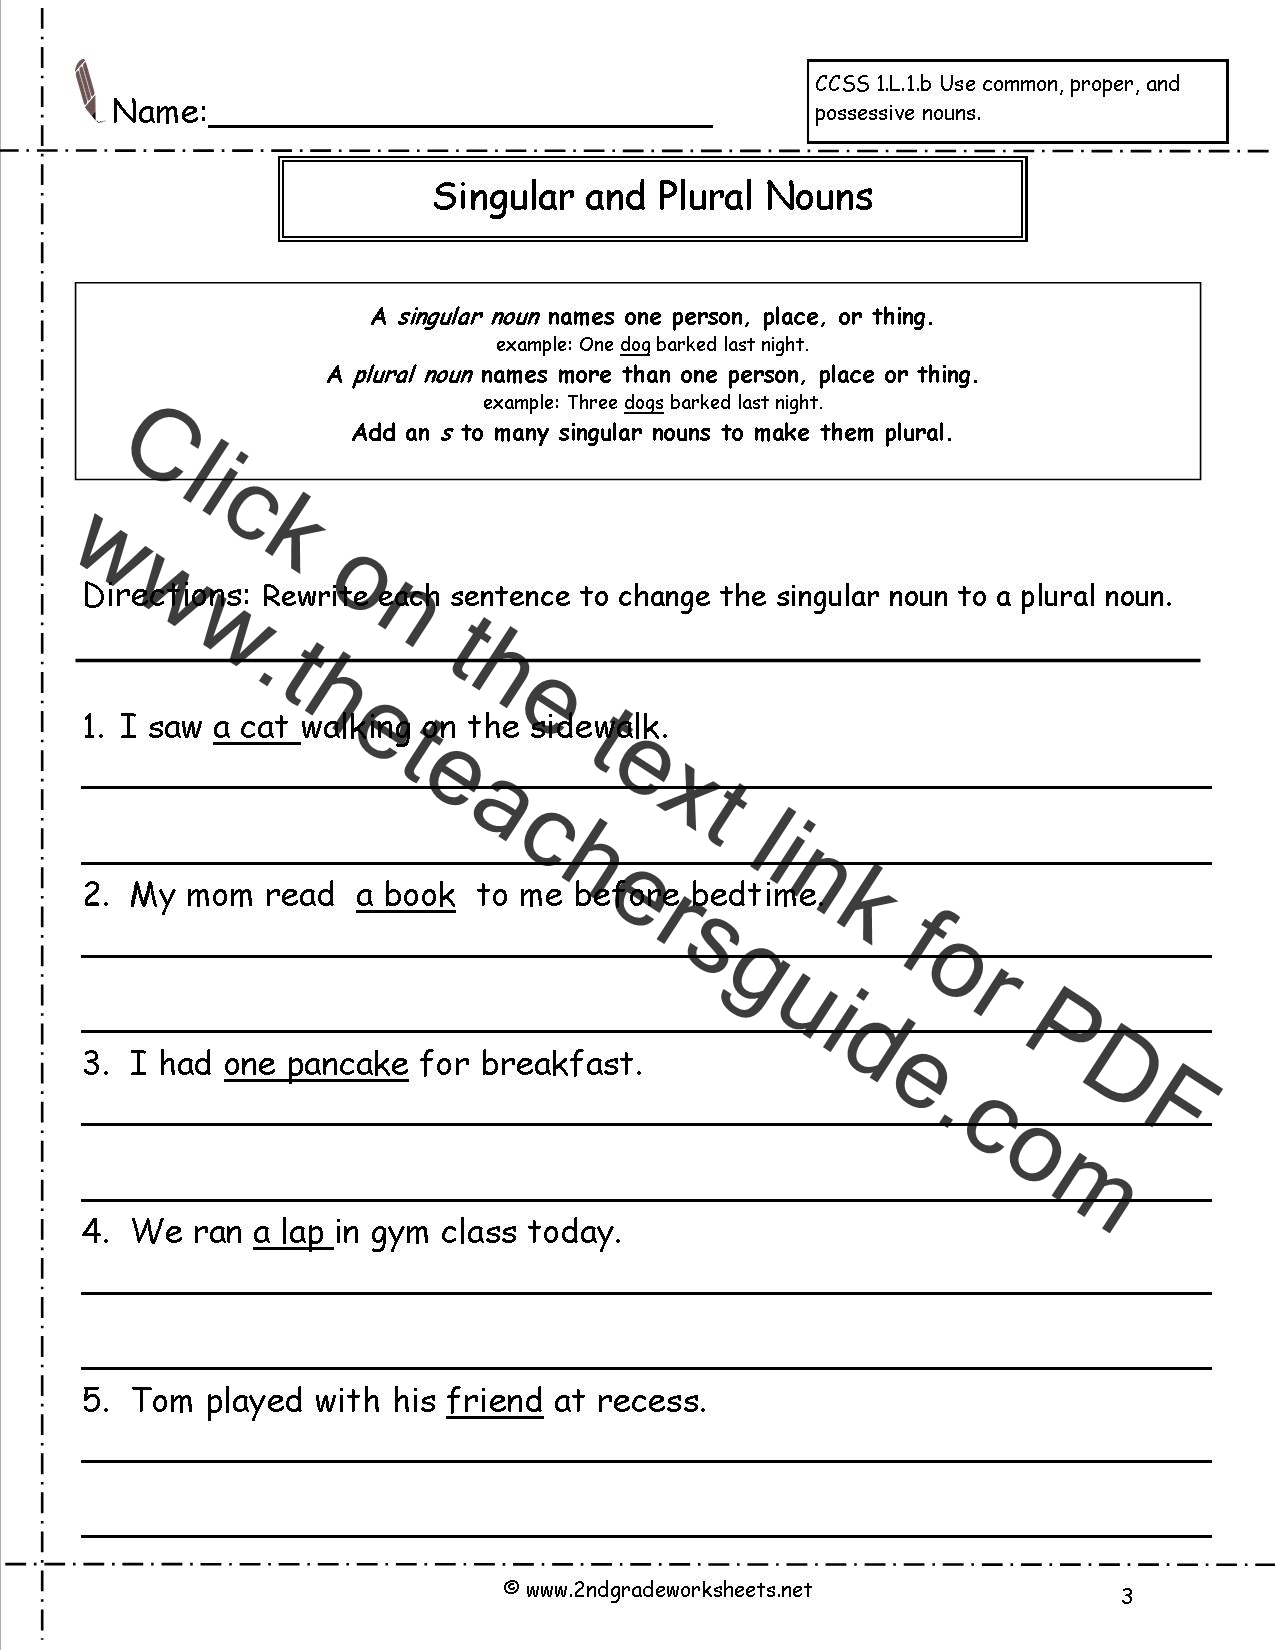 Worksheet Singular And Plurals Worksheets For Kids singular and plural nouns worksheets worksheet